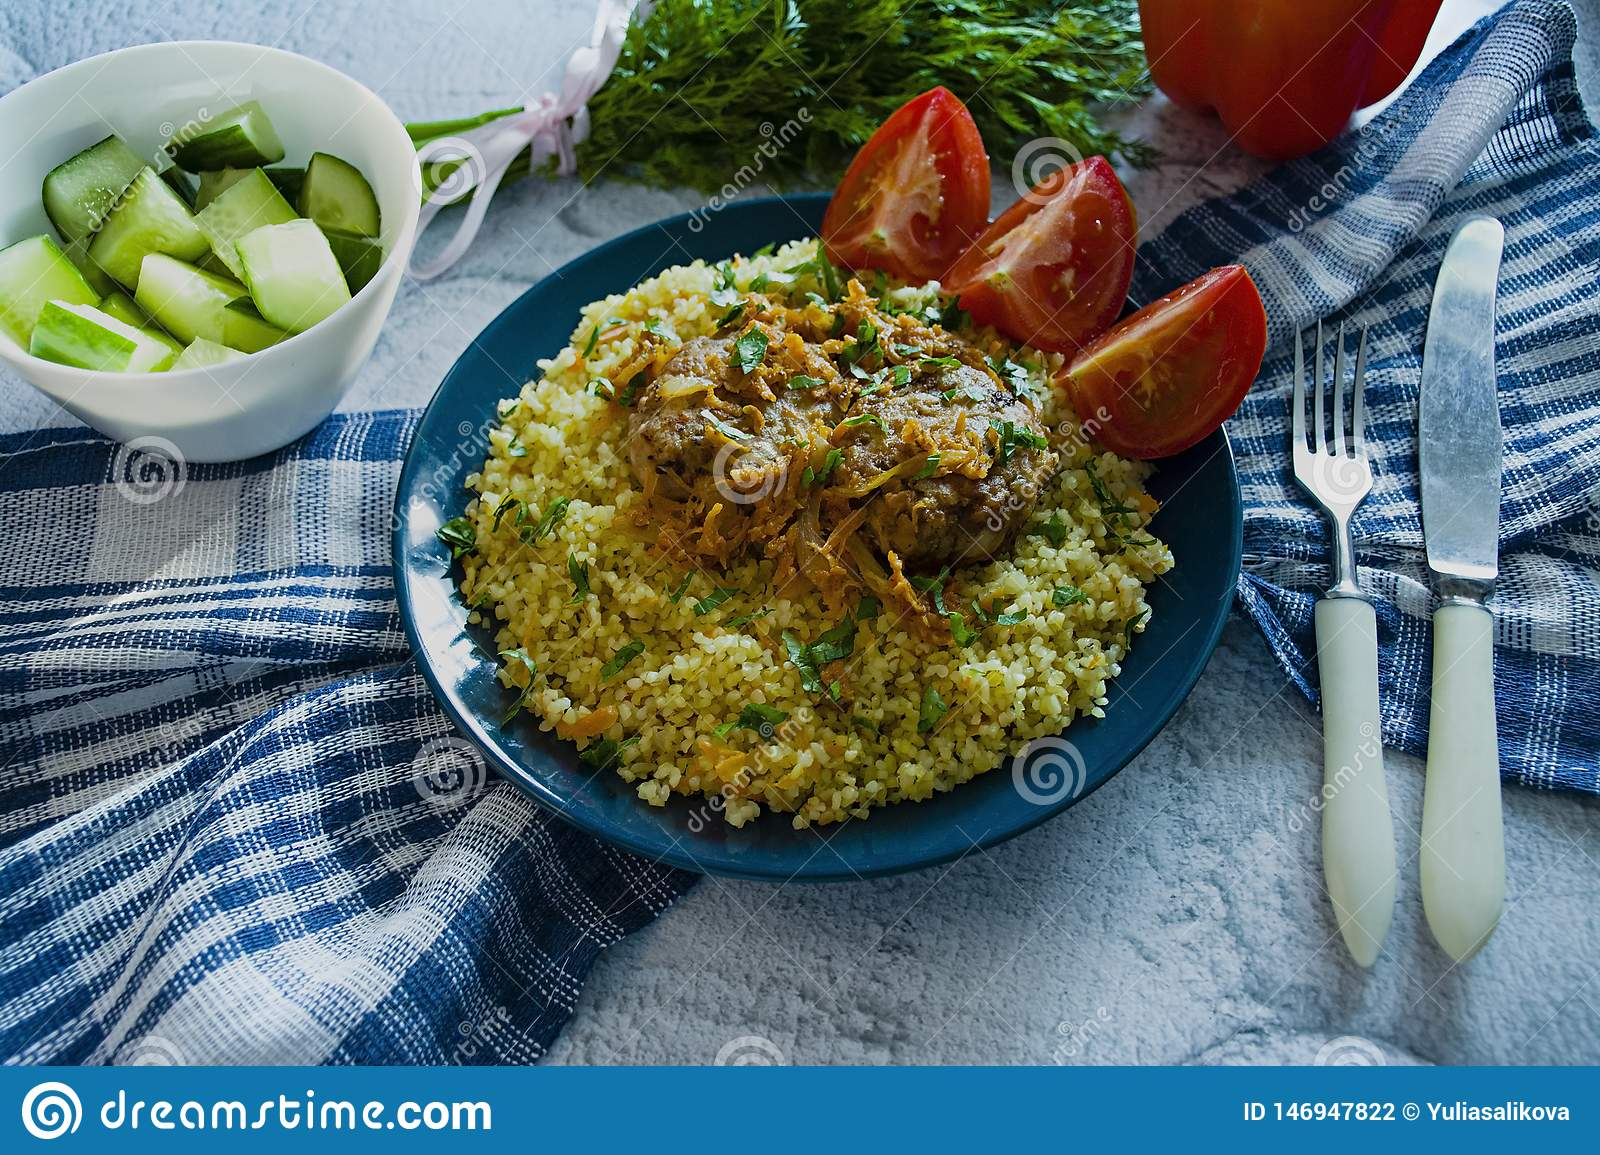 Turkish bulgur pilaf with meatballs and greens. Tasty homemade food close up